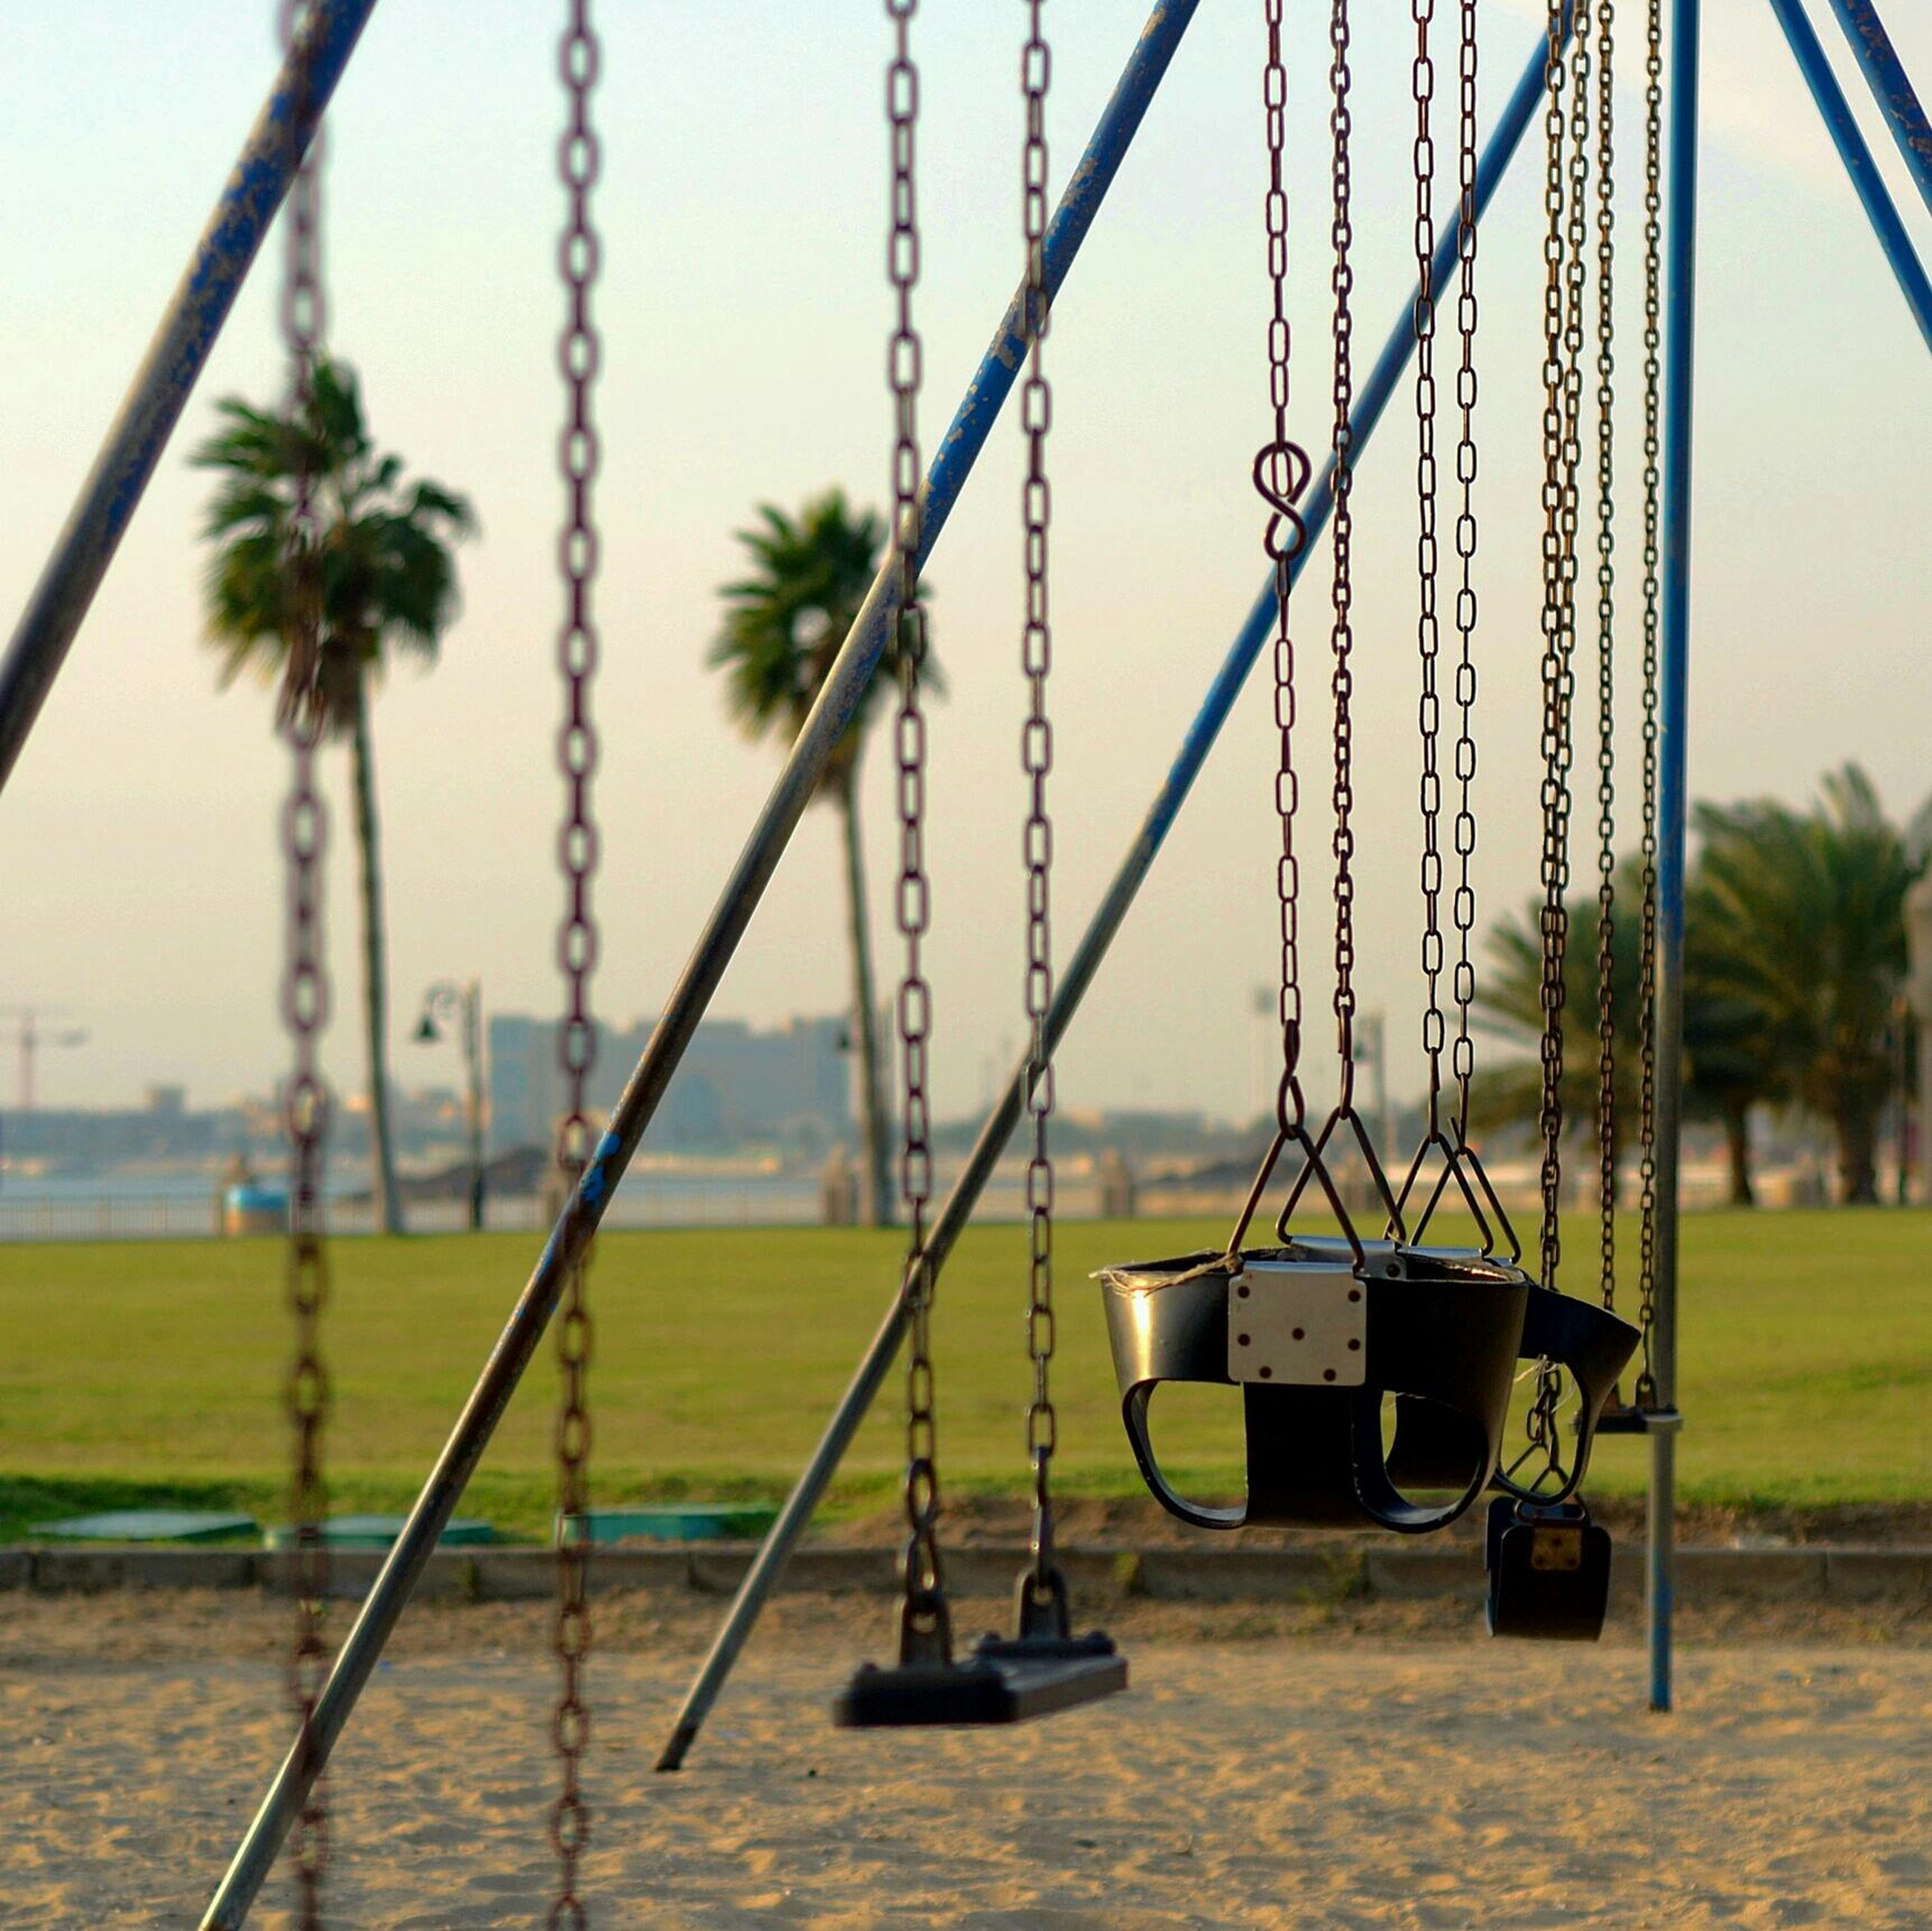 grass, sky, field, transportation, sea, focus on foreground, green color, nature, growth, water, outdoors, playground, day, swing, no people, beach, mode of transport, tranquility, tree, close-up